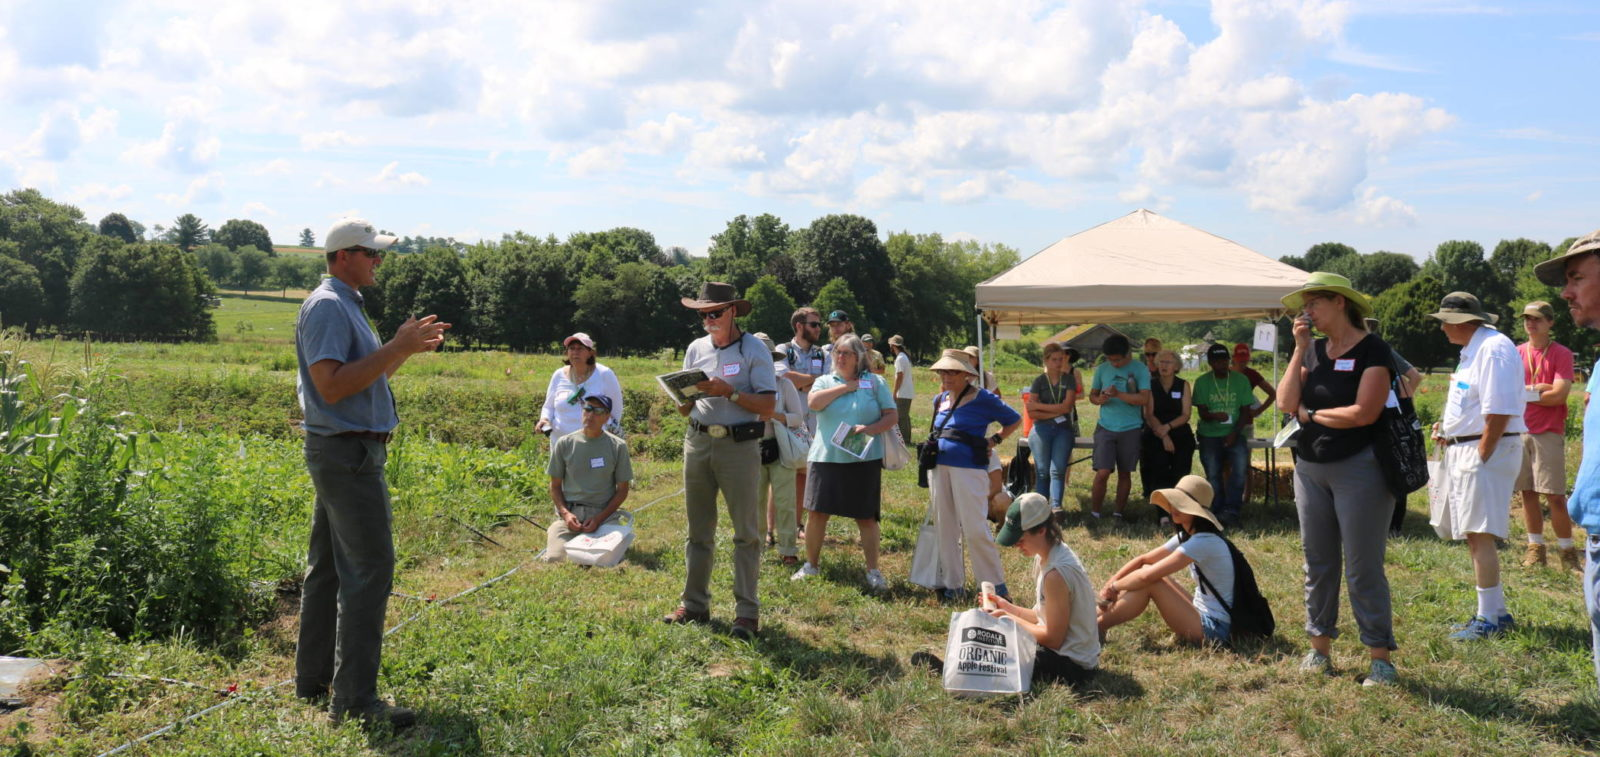 Drew speaking to group of Organic Field Days attendees